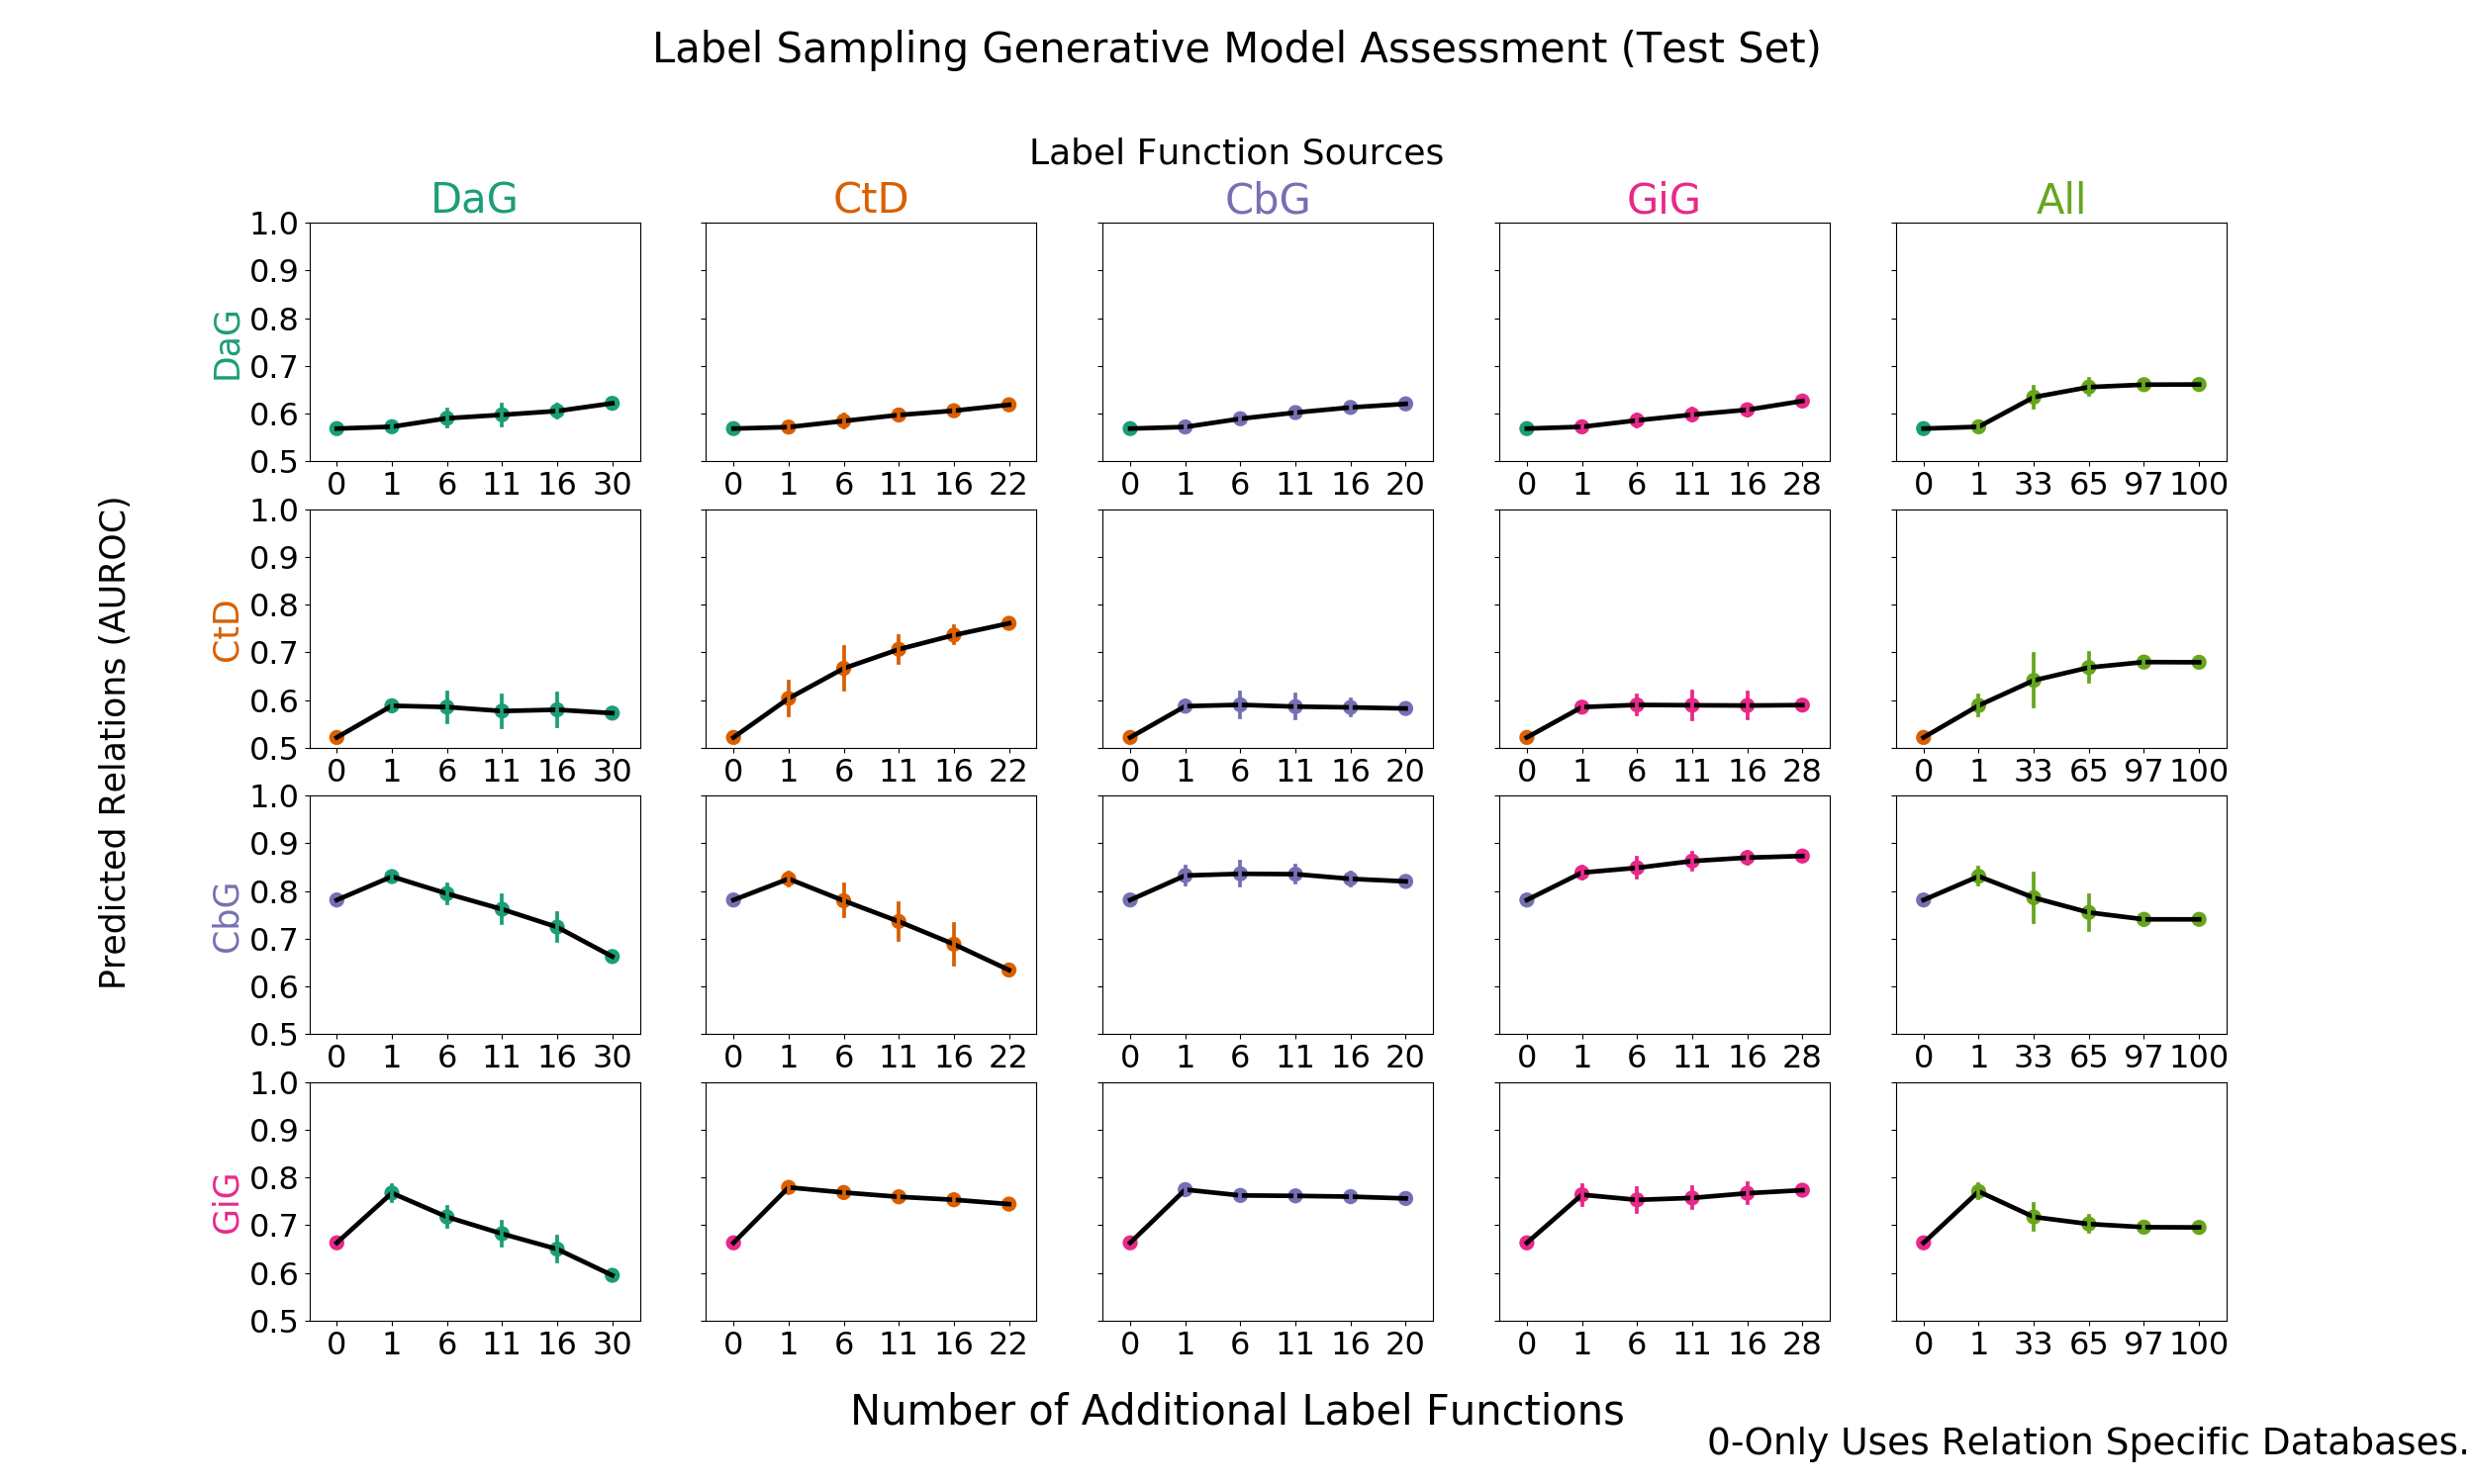 Figure 2: Grid of AUROC scores for each generative model trained on randomly sampled label functions. The rows depict the relationship each model is trying to predict and the columns are the edge type specific sources from which each label function is sampled. The right most column consists of pooling every relationship specific label function and proceeding as above.